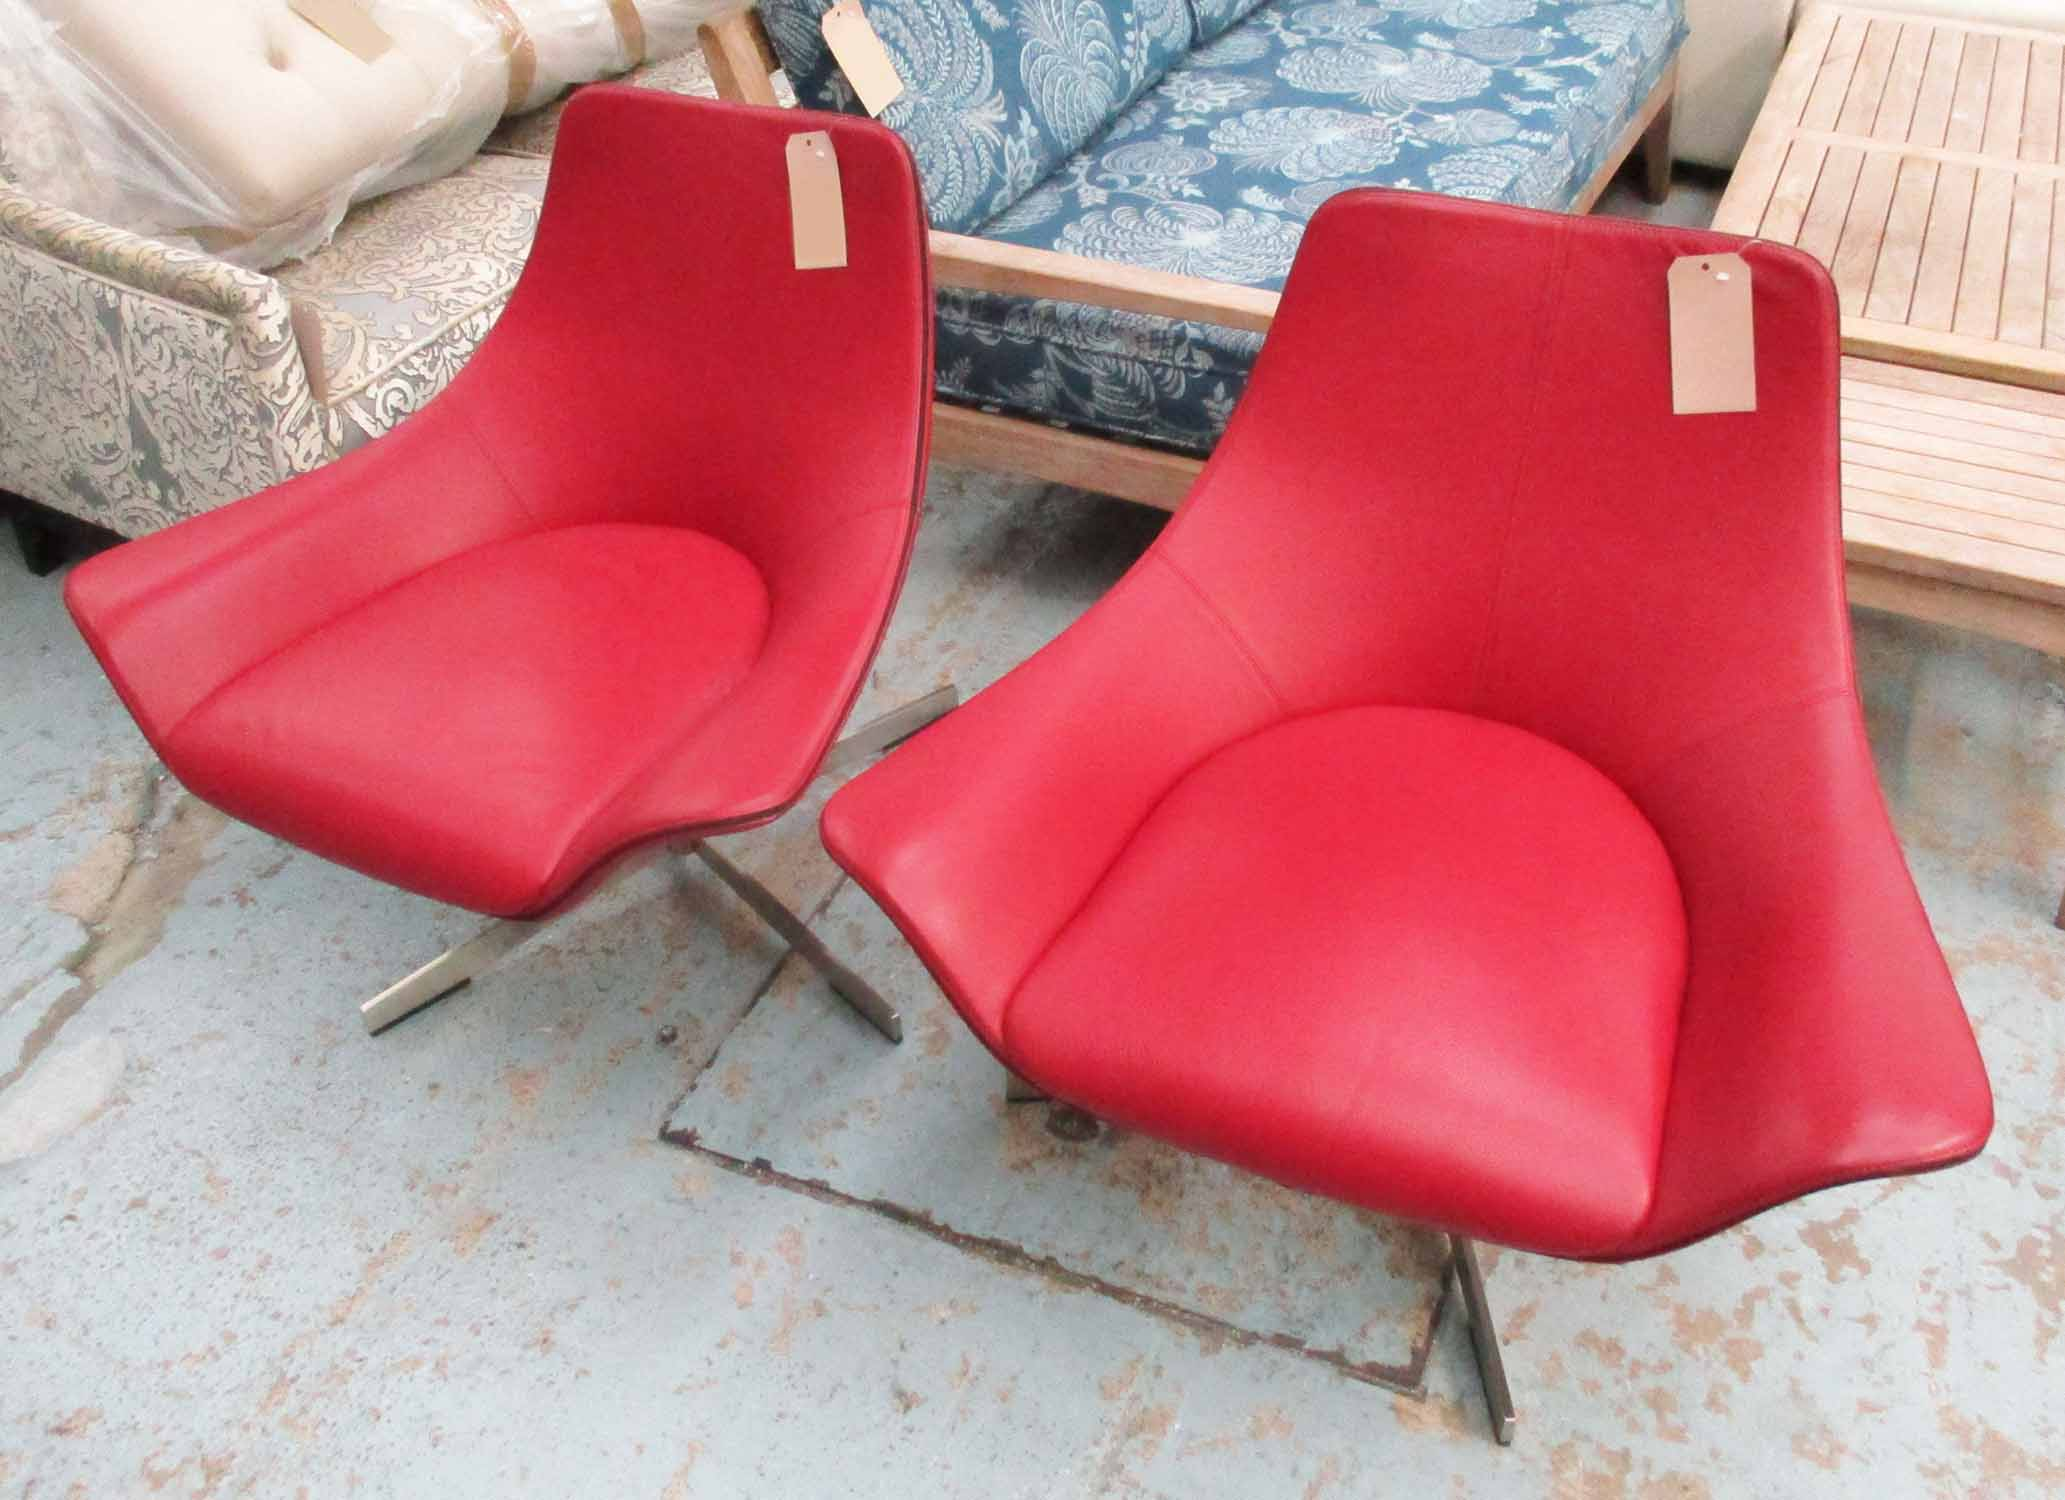 Lot 3 - SWIVEL CHAIRS, a pair, by Matteo Grassi, in burgundy leather, each 87cm x 81cm H.